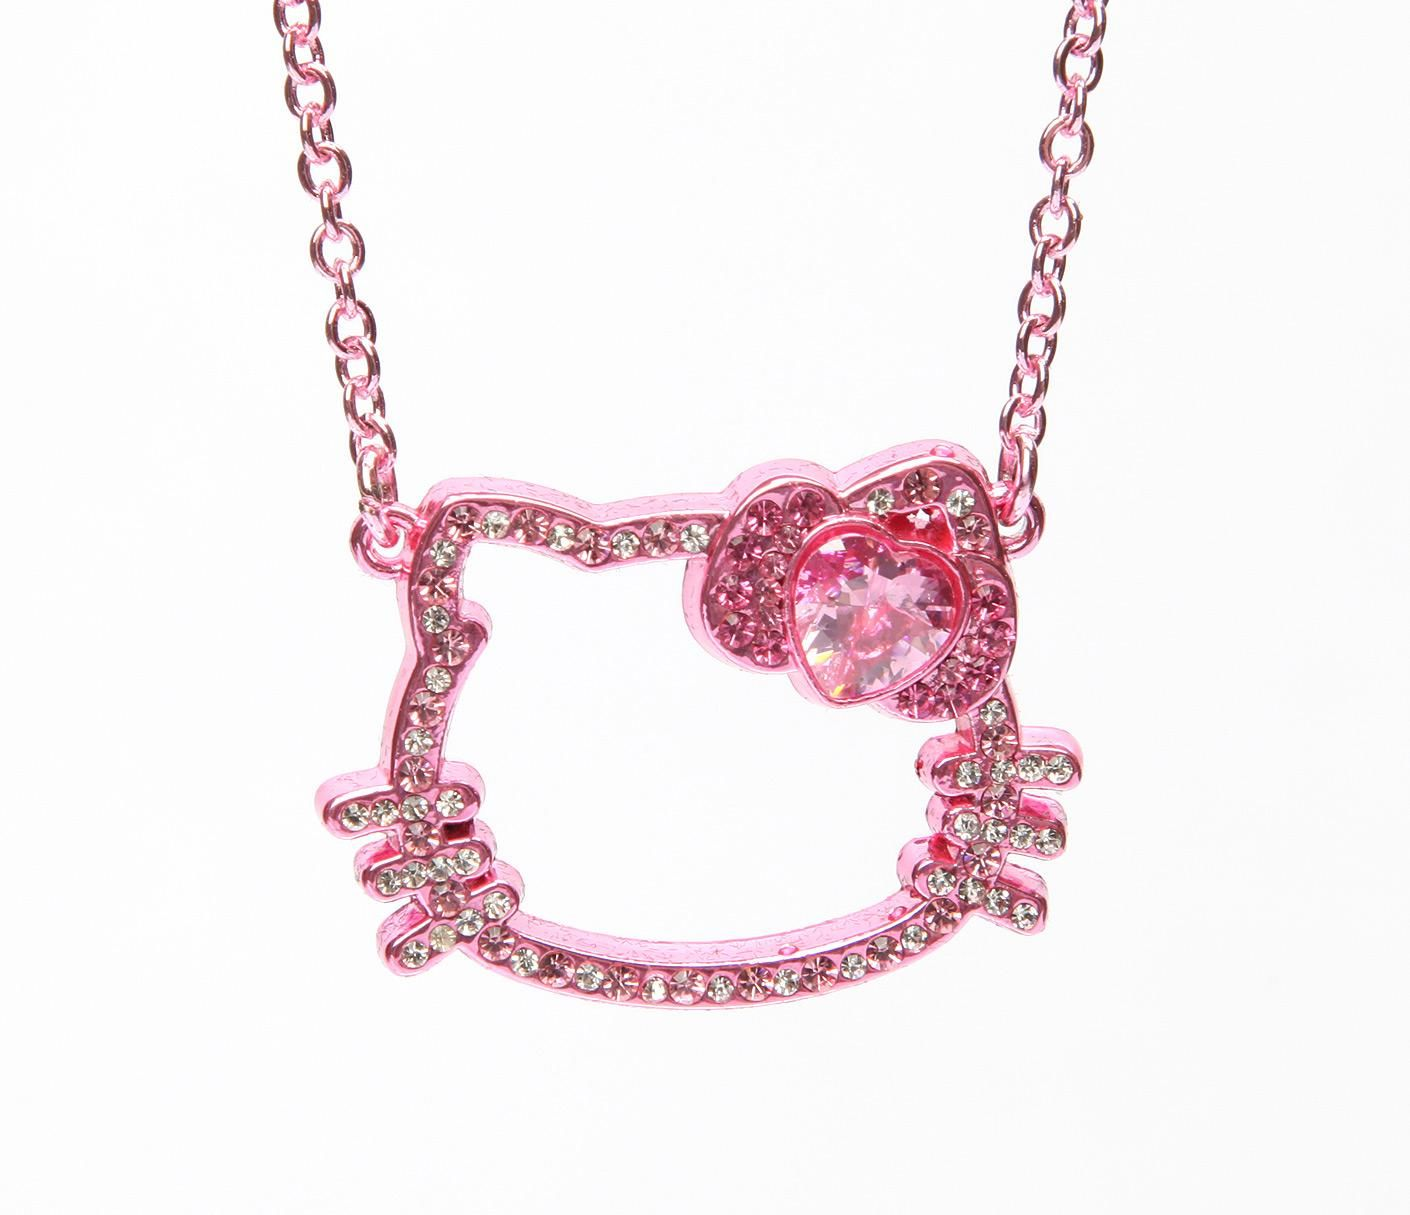 Hello kitty face necklace pink gold in new cool new arrivals at hello kitty face necklace pink gold in new cool new arrivals at sanrio mozeypictures Image collections